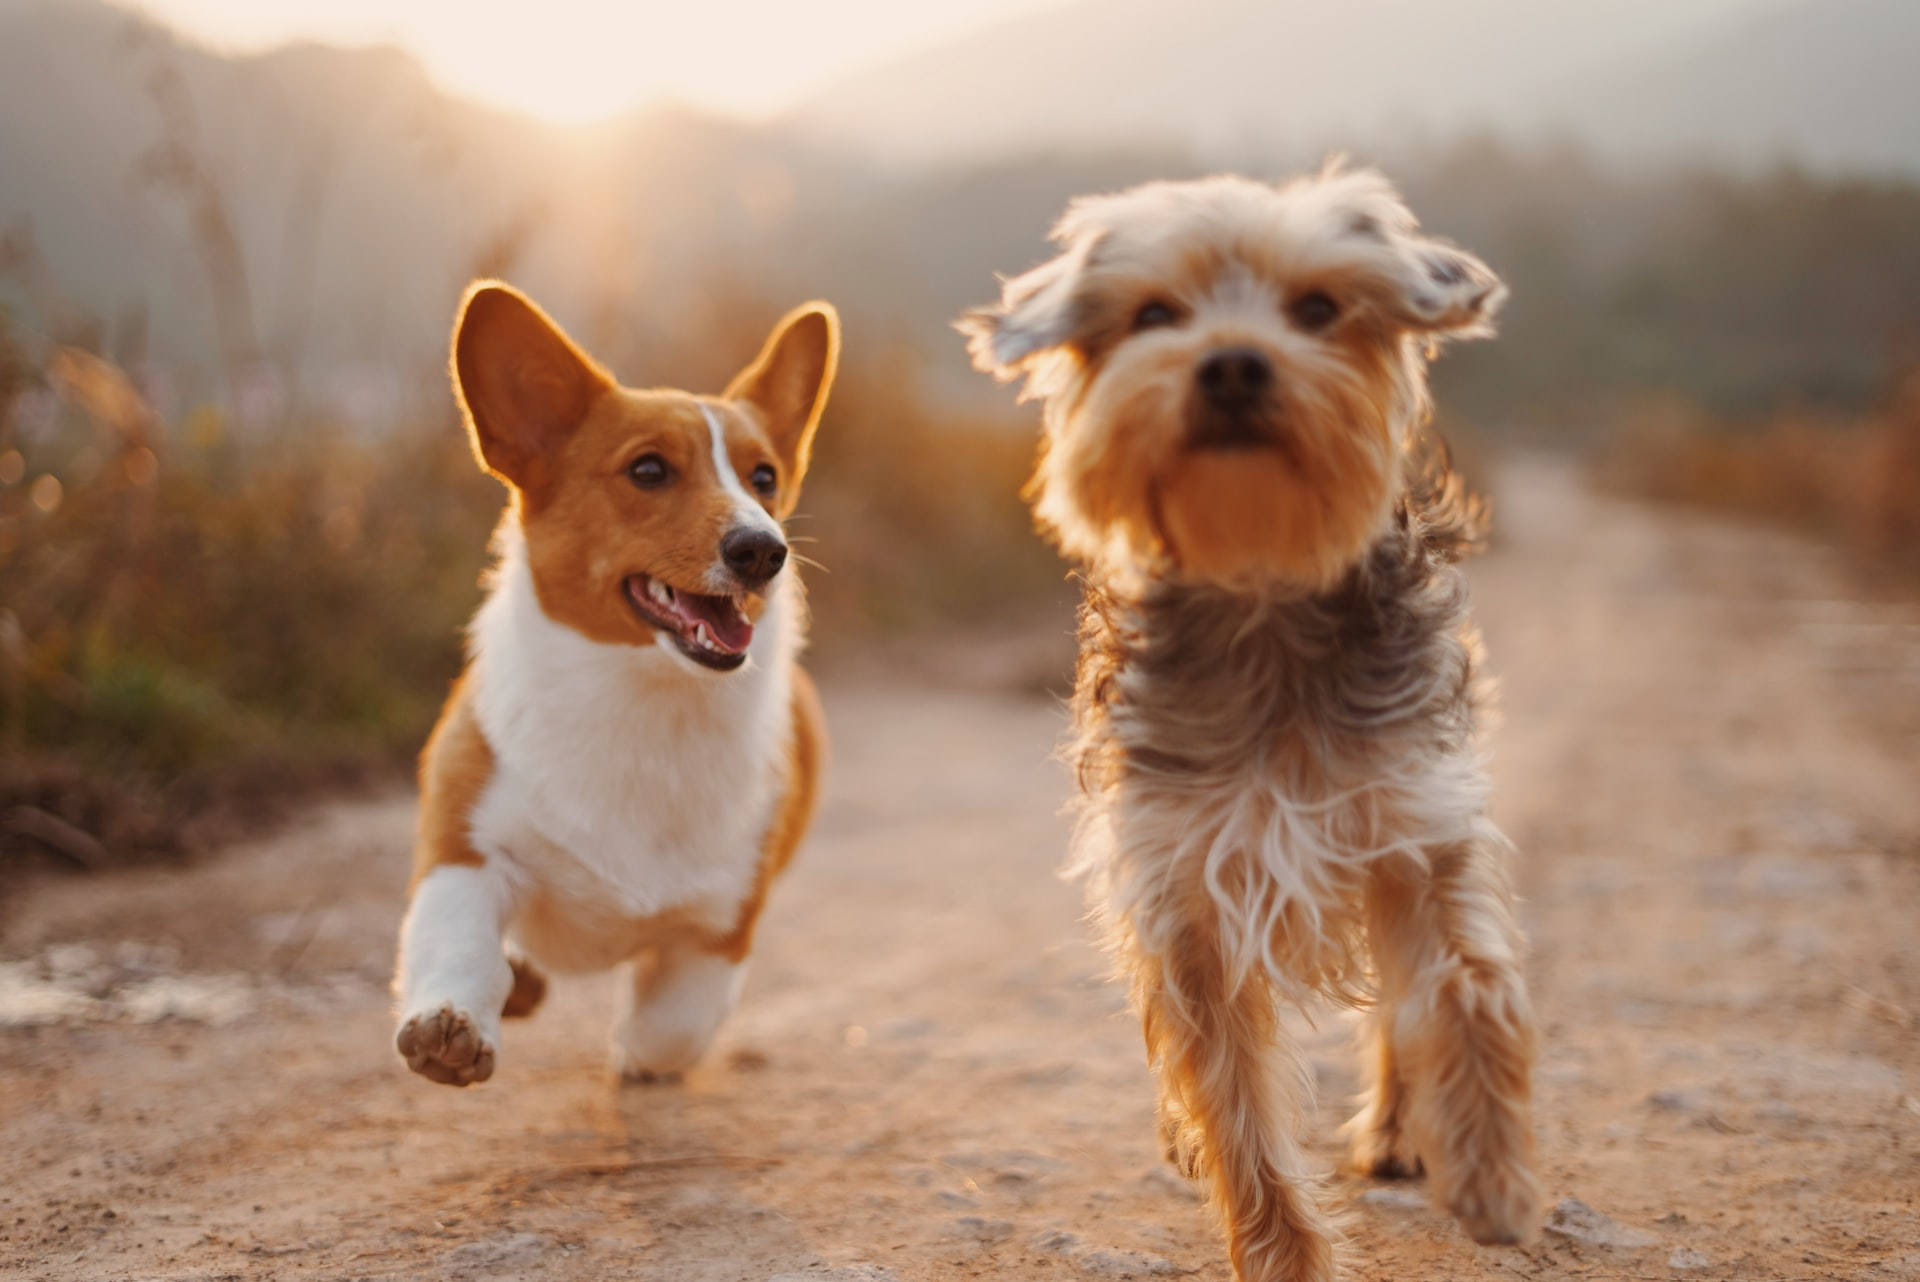 You May Need To Consider Glucosamine for Dogs